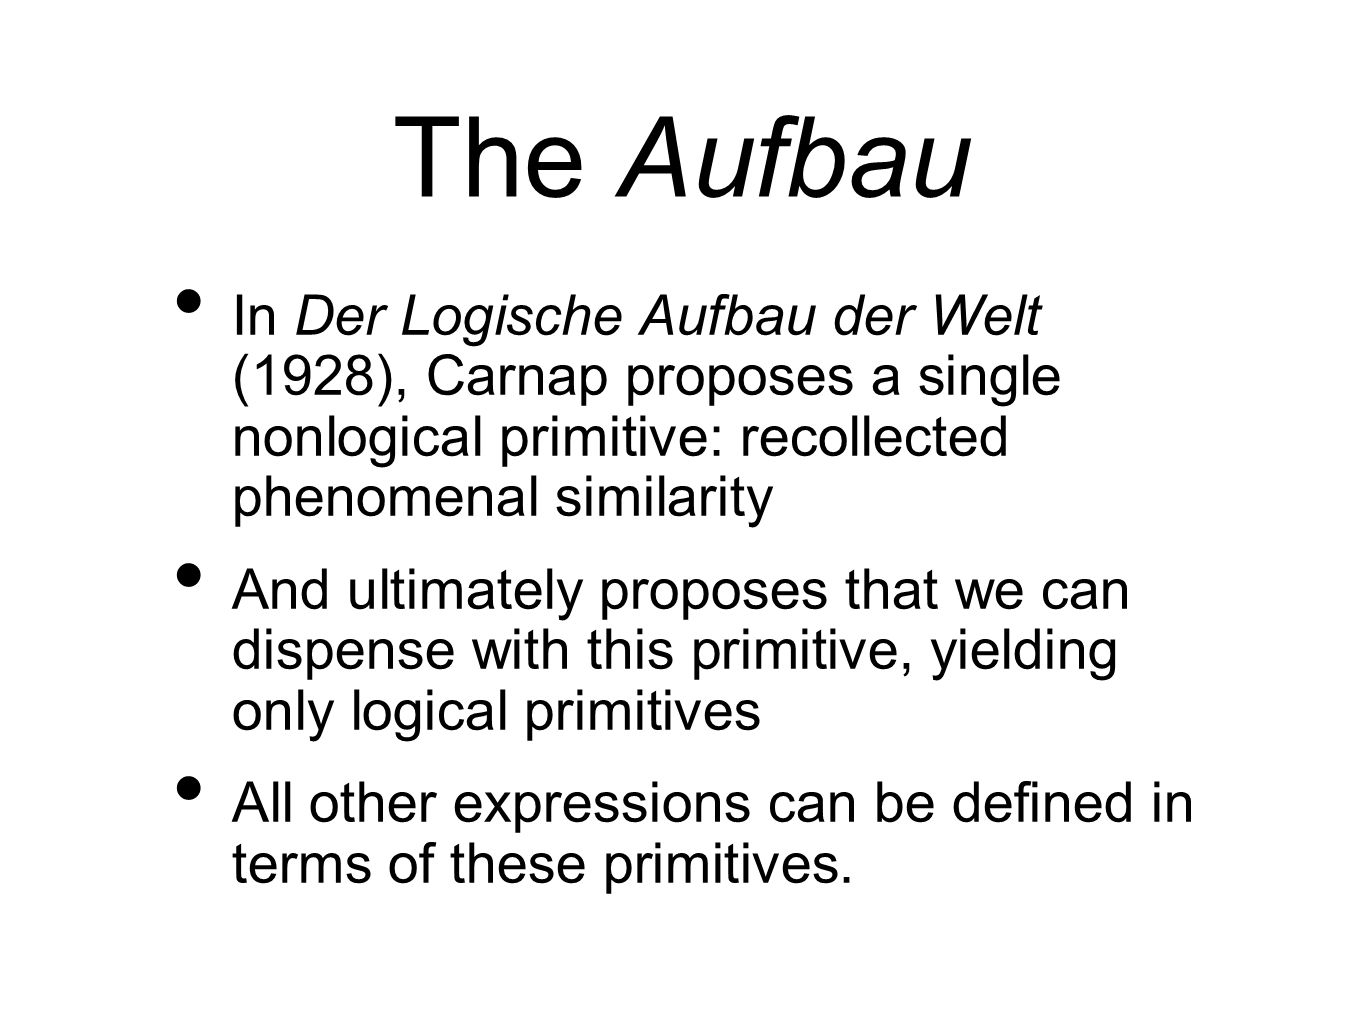 The Aufbau In Der Logische Aufbau der Welt (1928), Carnap proposes a single nonlogical primitive: recollected phenomenal similarity.